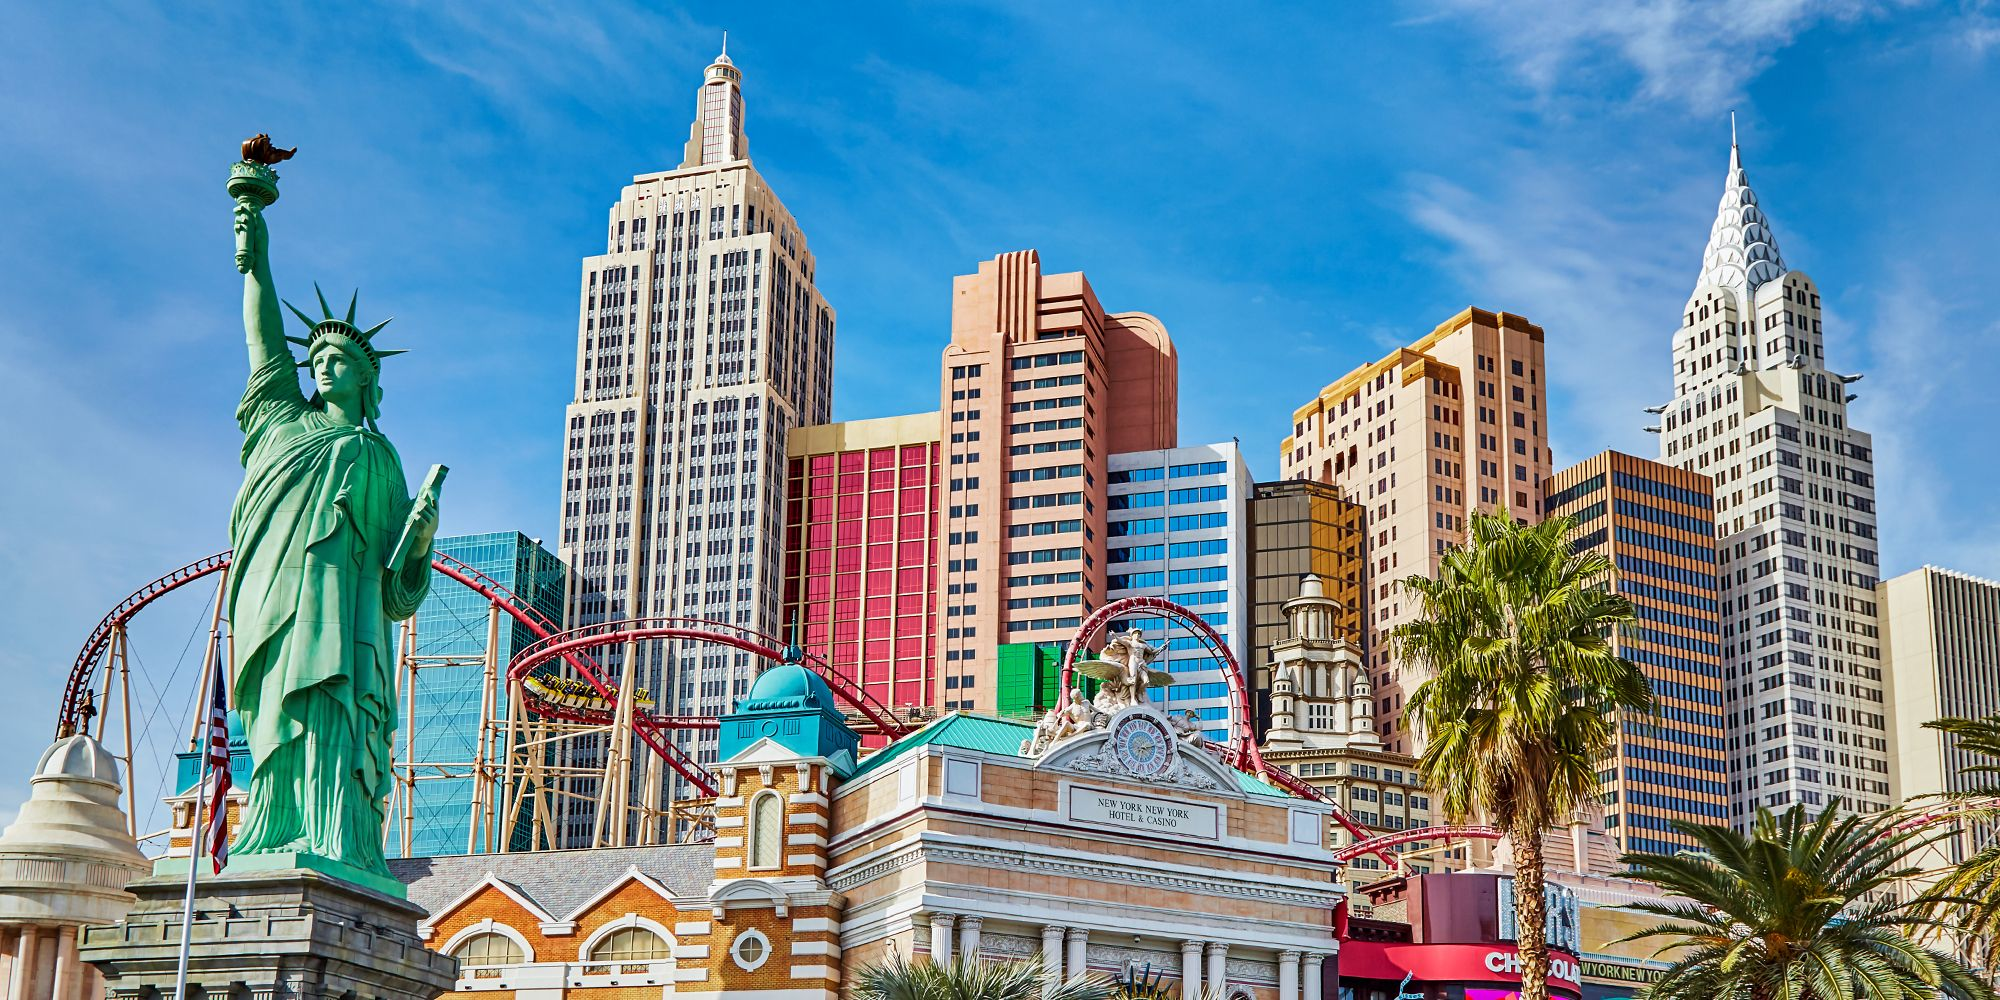 8 Best Hotels in Vegas for 2018 - Las Vegas Hotels & Resorts On and ...